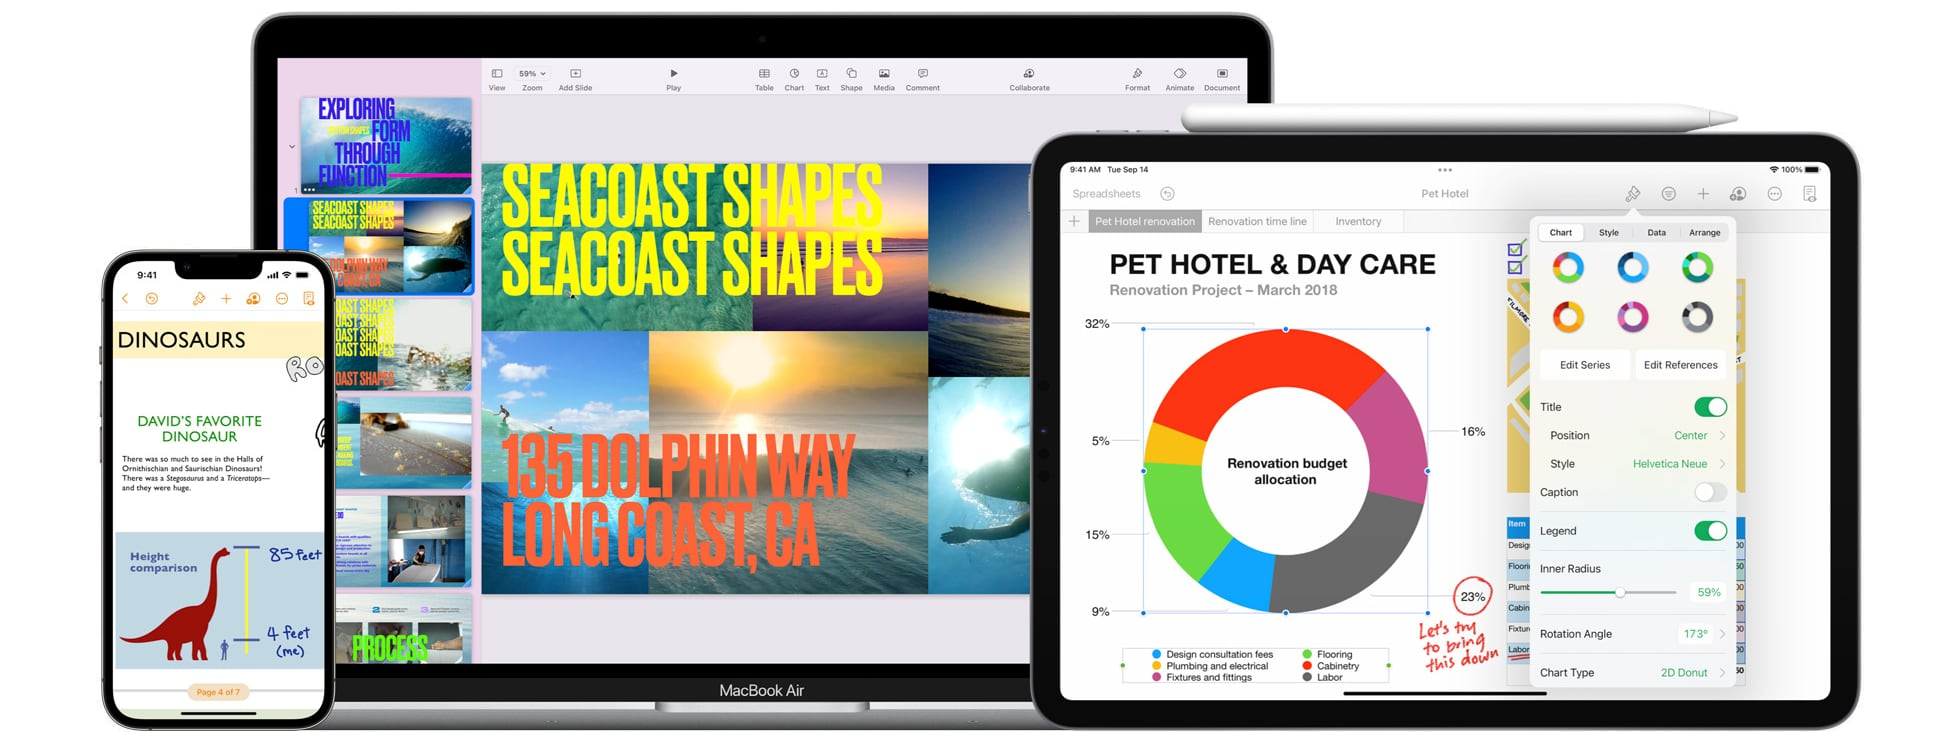 Apple's marketing image promoting the new productivity and collaboration features in iWork version 11.2 across iPhone, iPad and Mac